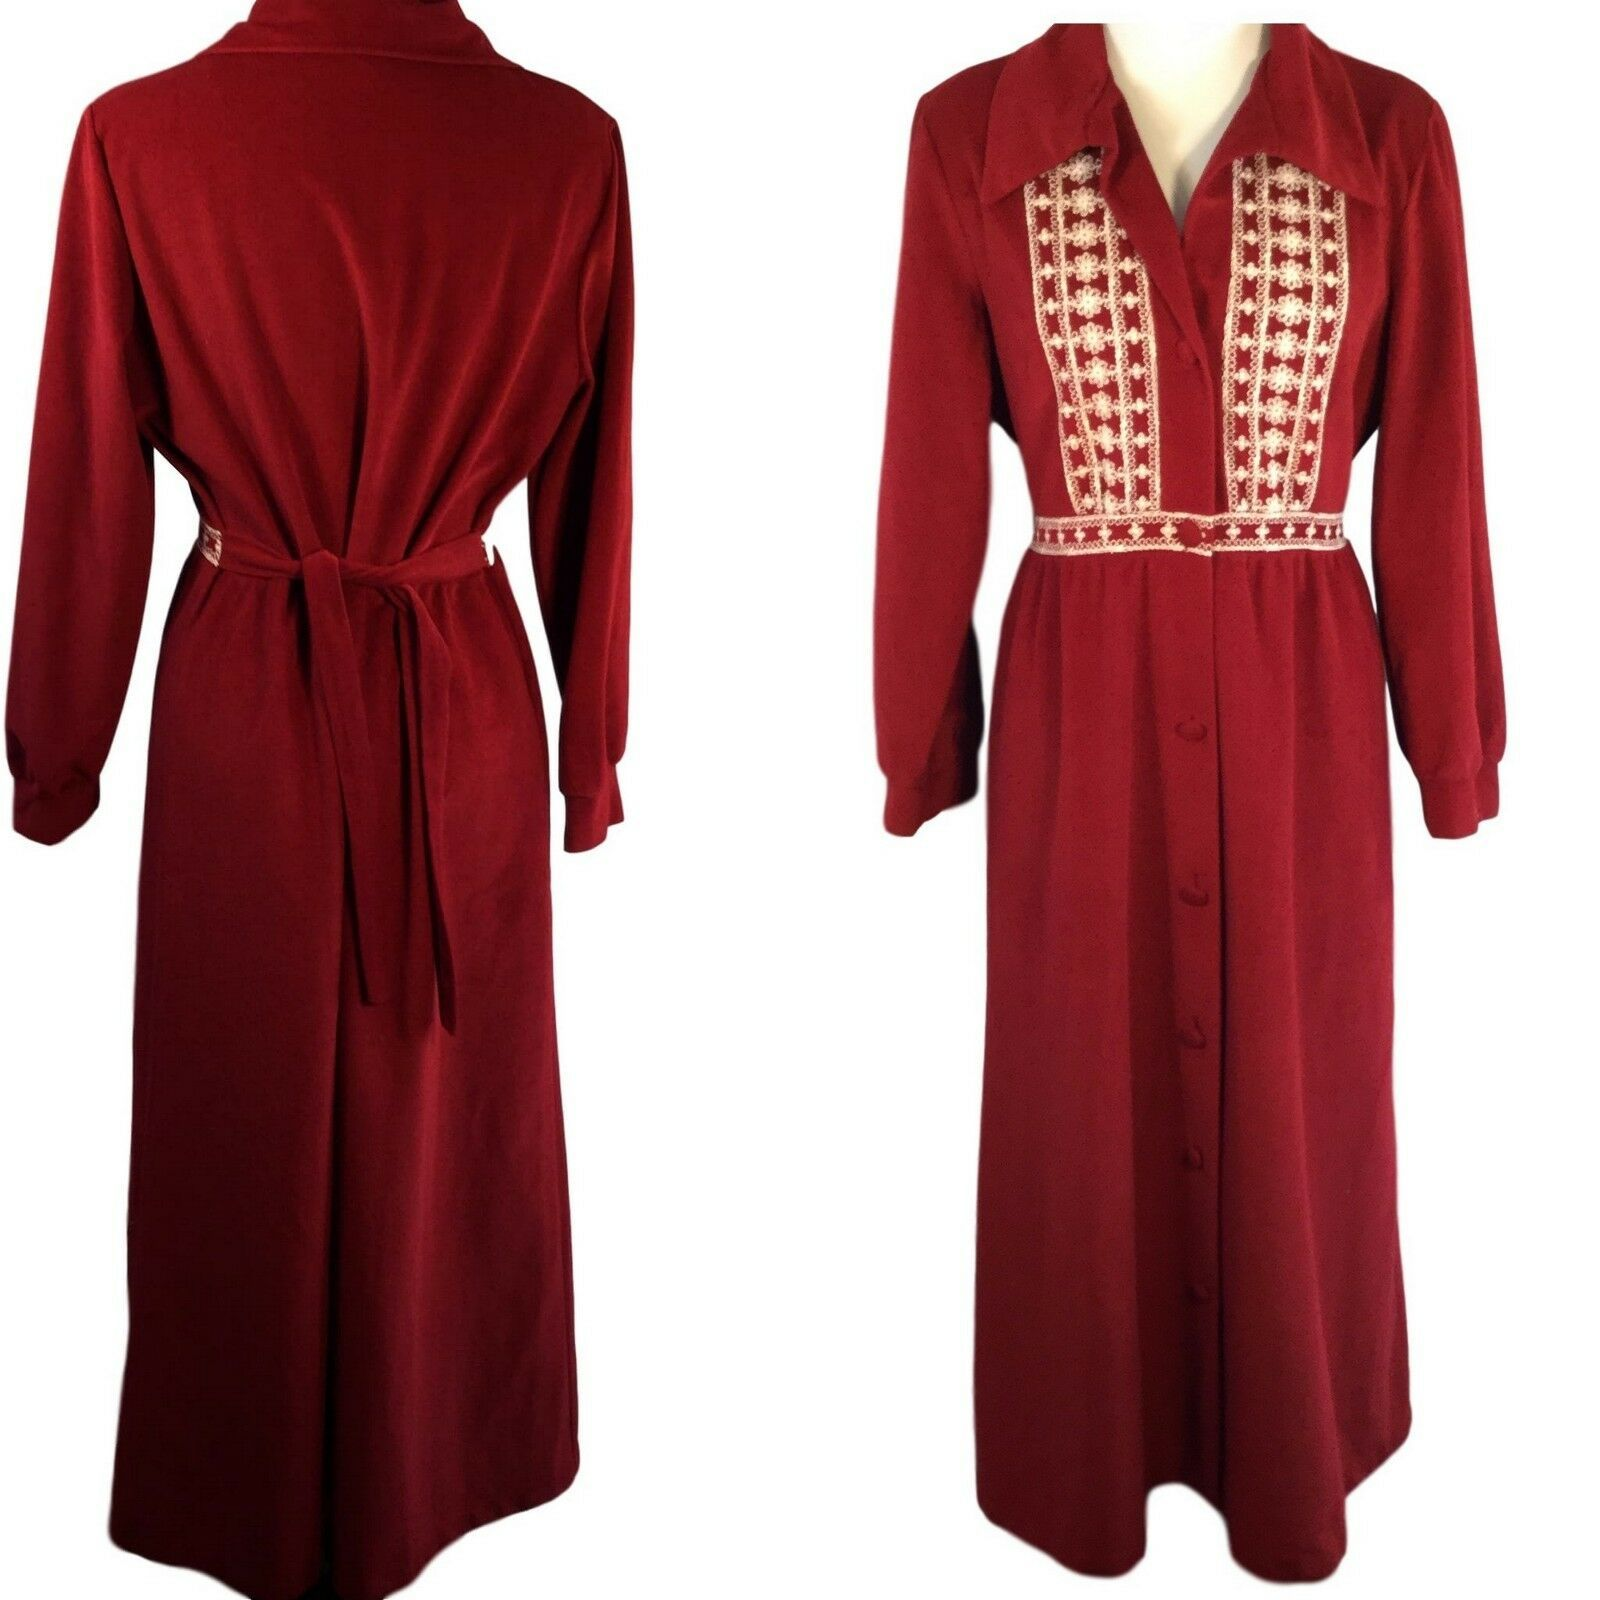 Primary image for Vtg Sears at Home Velour Lounge Wear Robe Embroidered Yoke Covered Buttons M